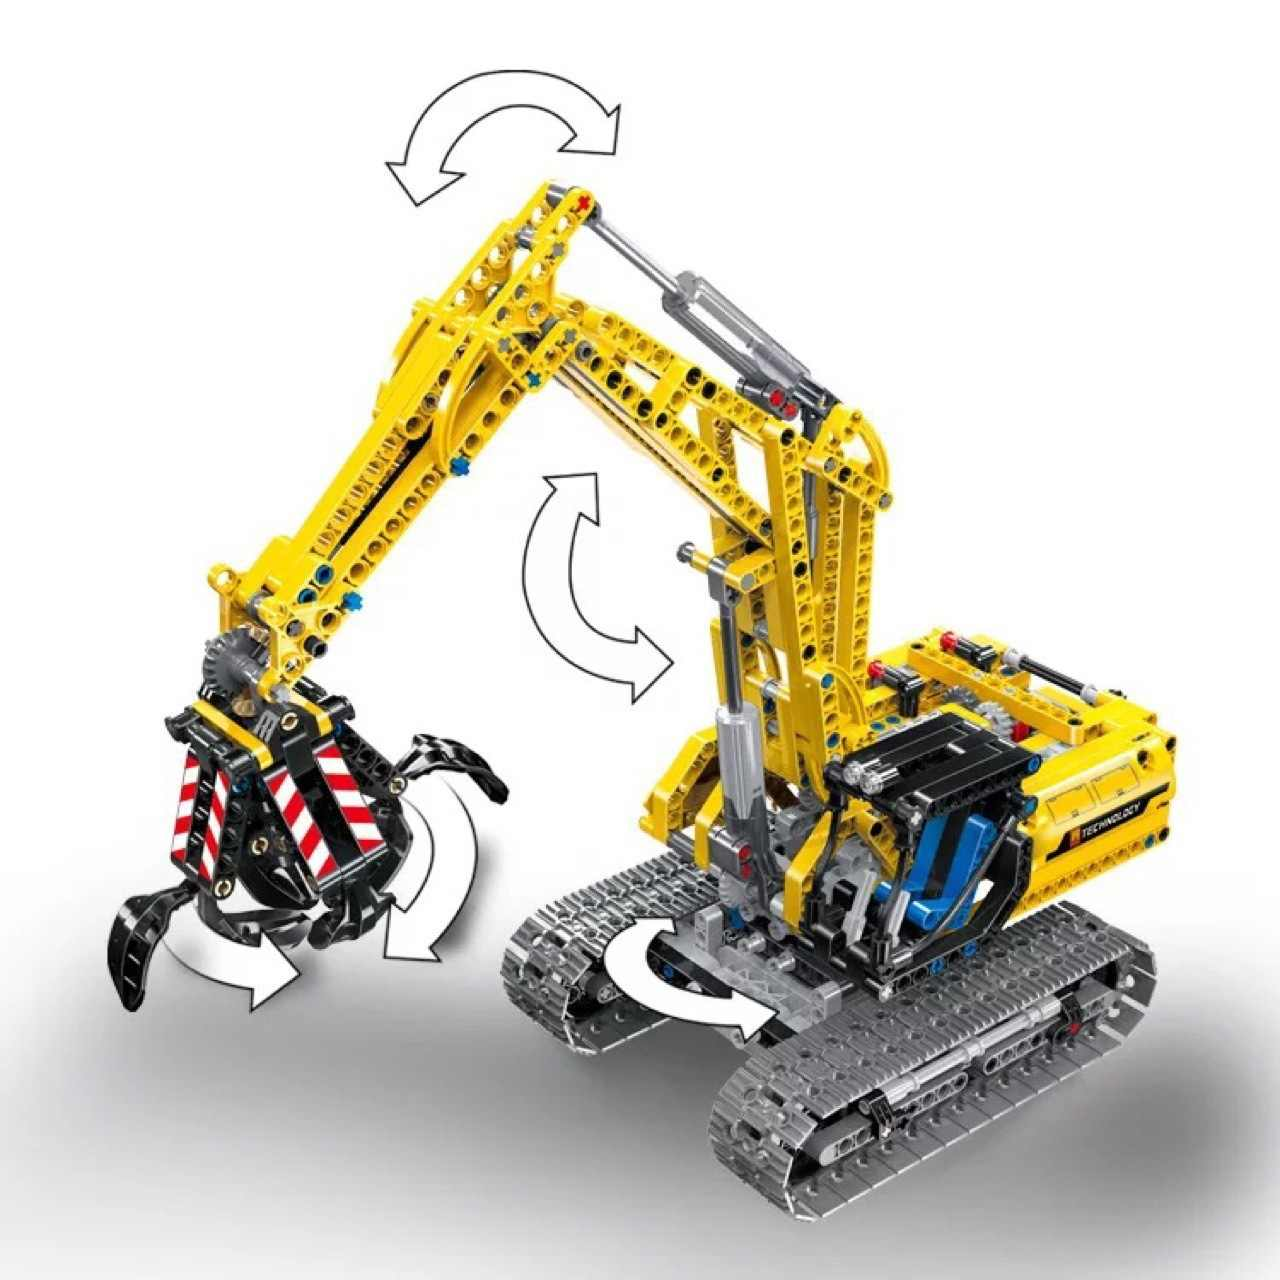 38014 Technic Series  2 in1 Mechanical Excavator Bulldozer Bulidng Blocks Brick Set Toys For Children Legolyed Compatiable